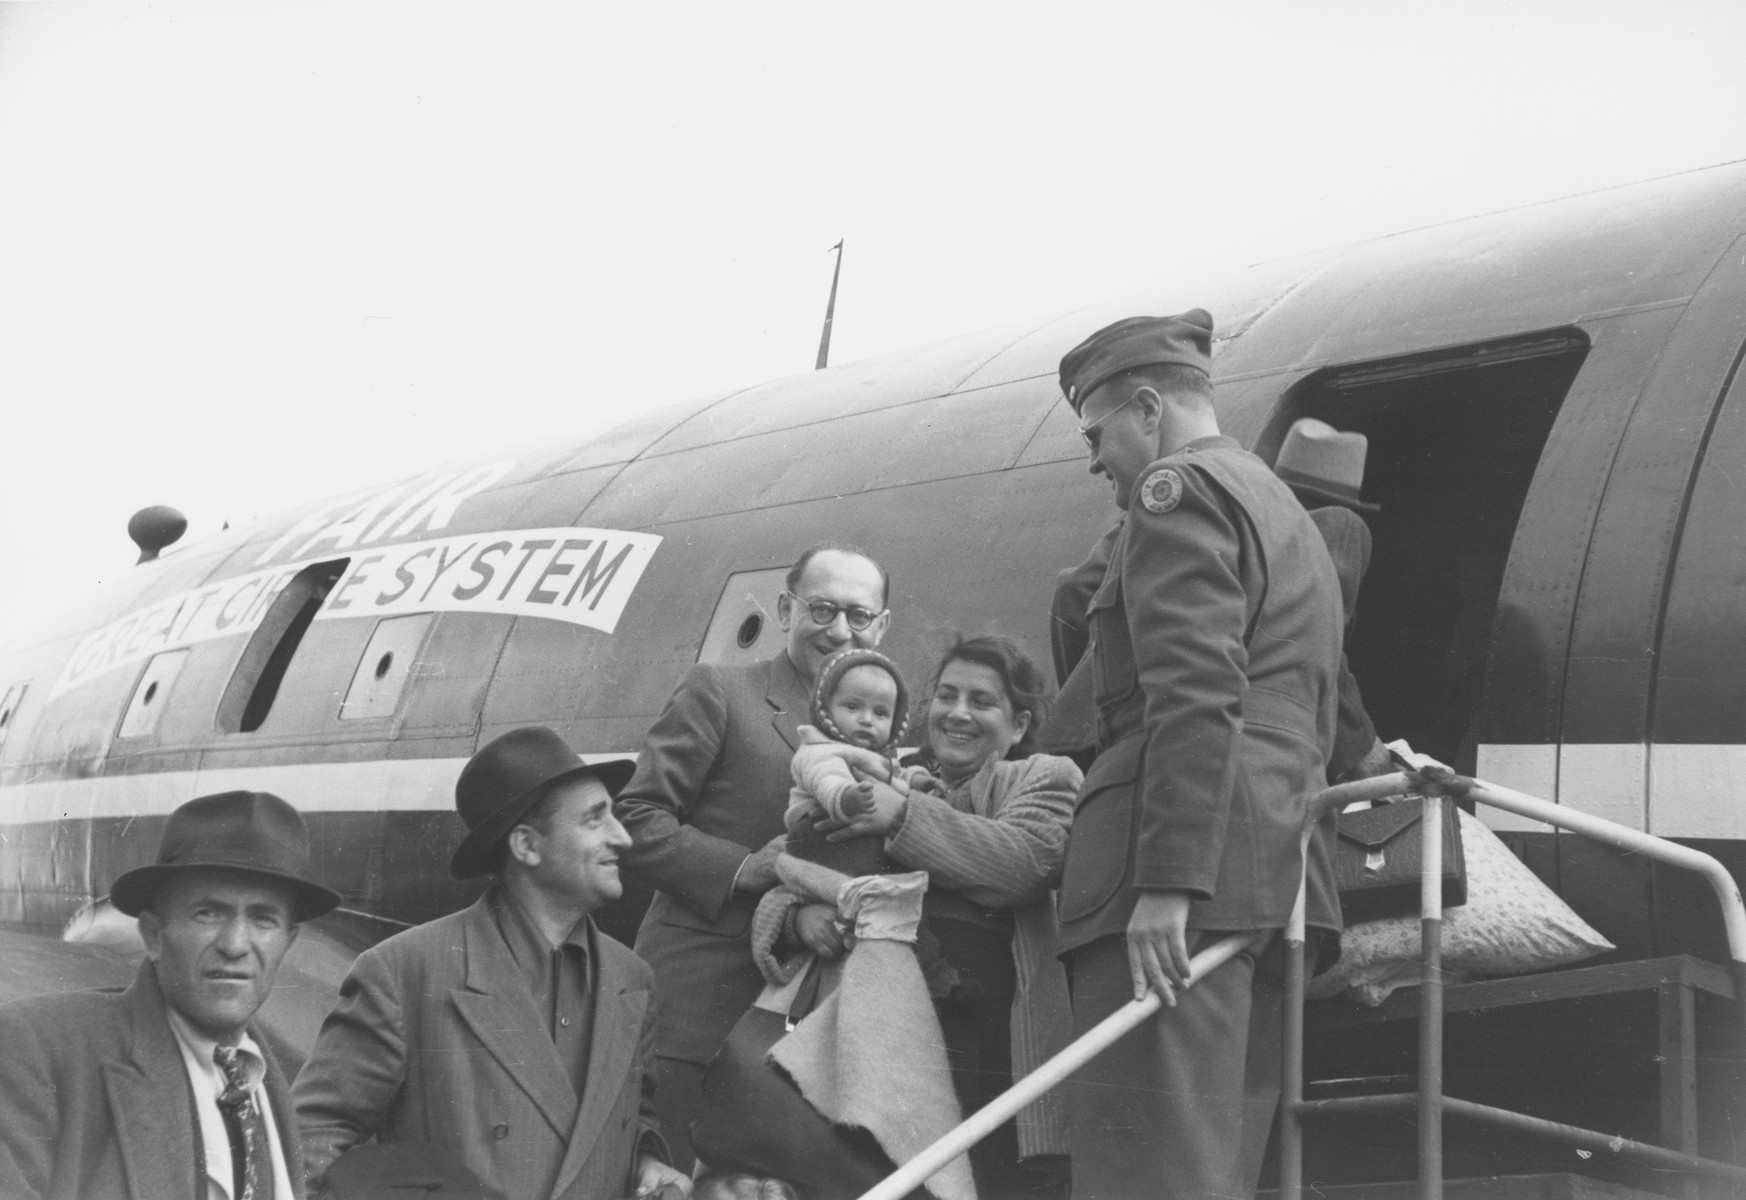 Israeli emissary Barzelai greets Jewish DPs as they board the first air transport of new immigrants to Israel from Germany.